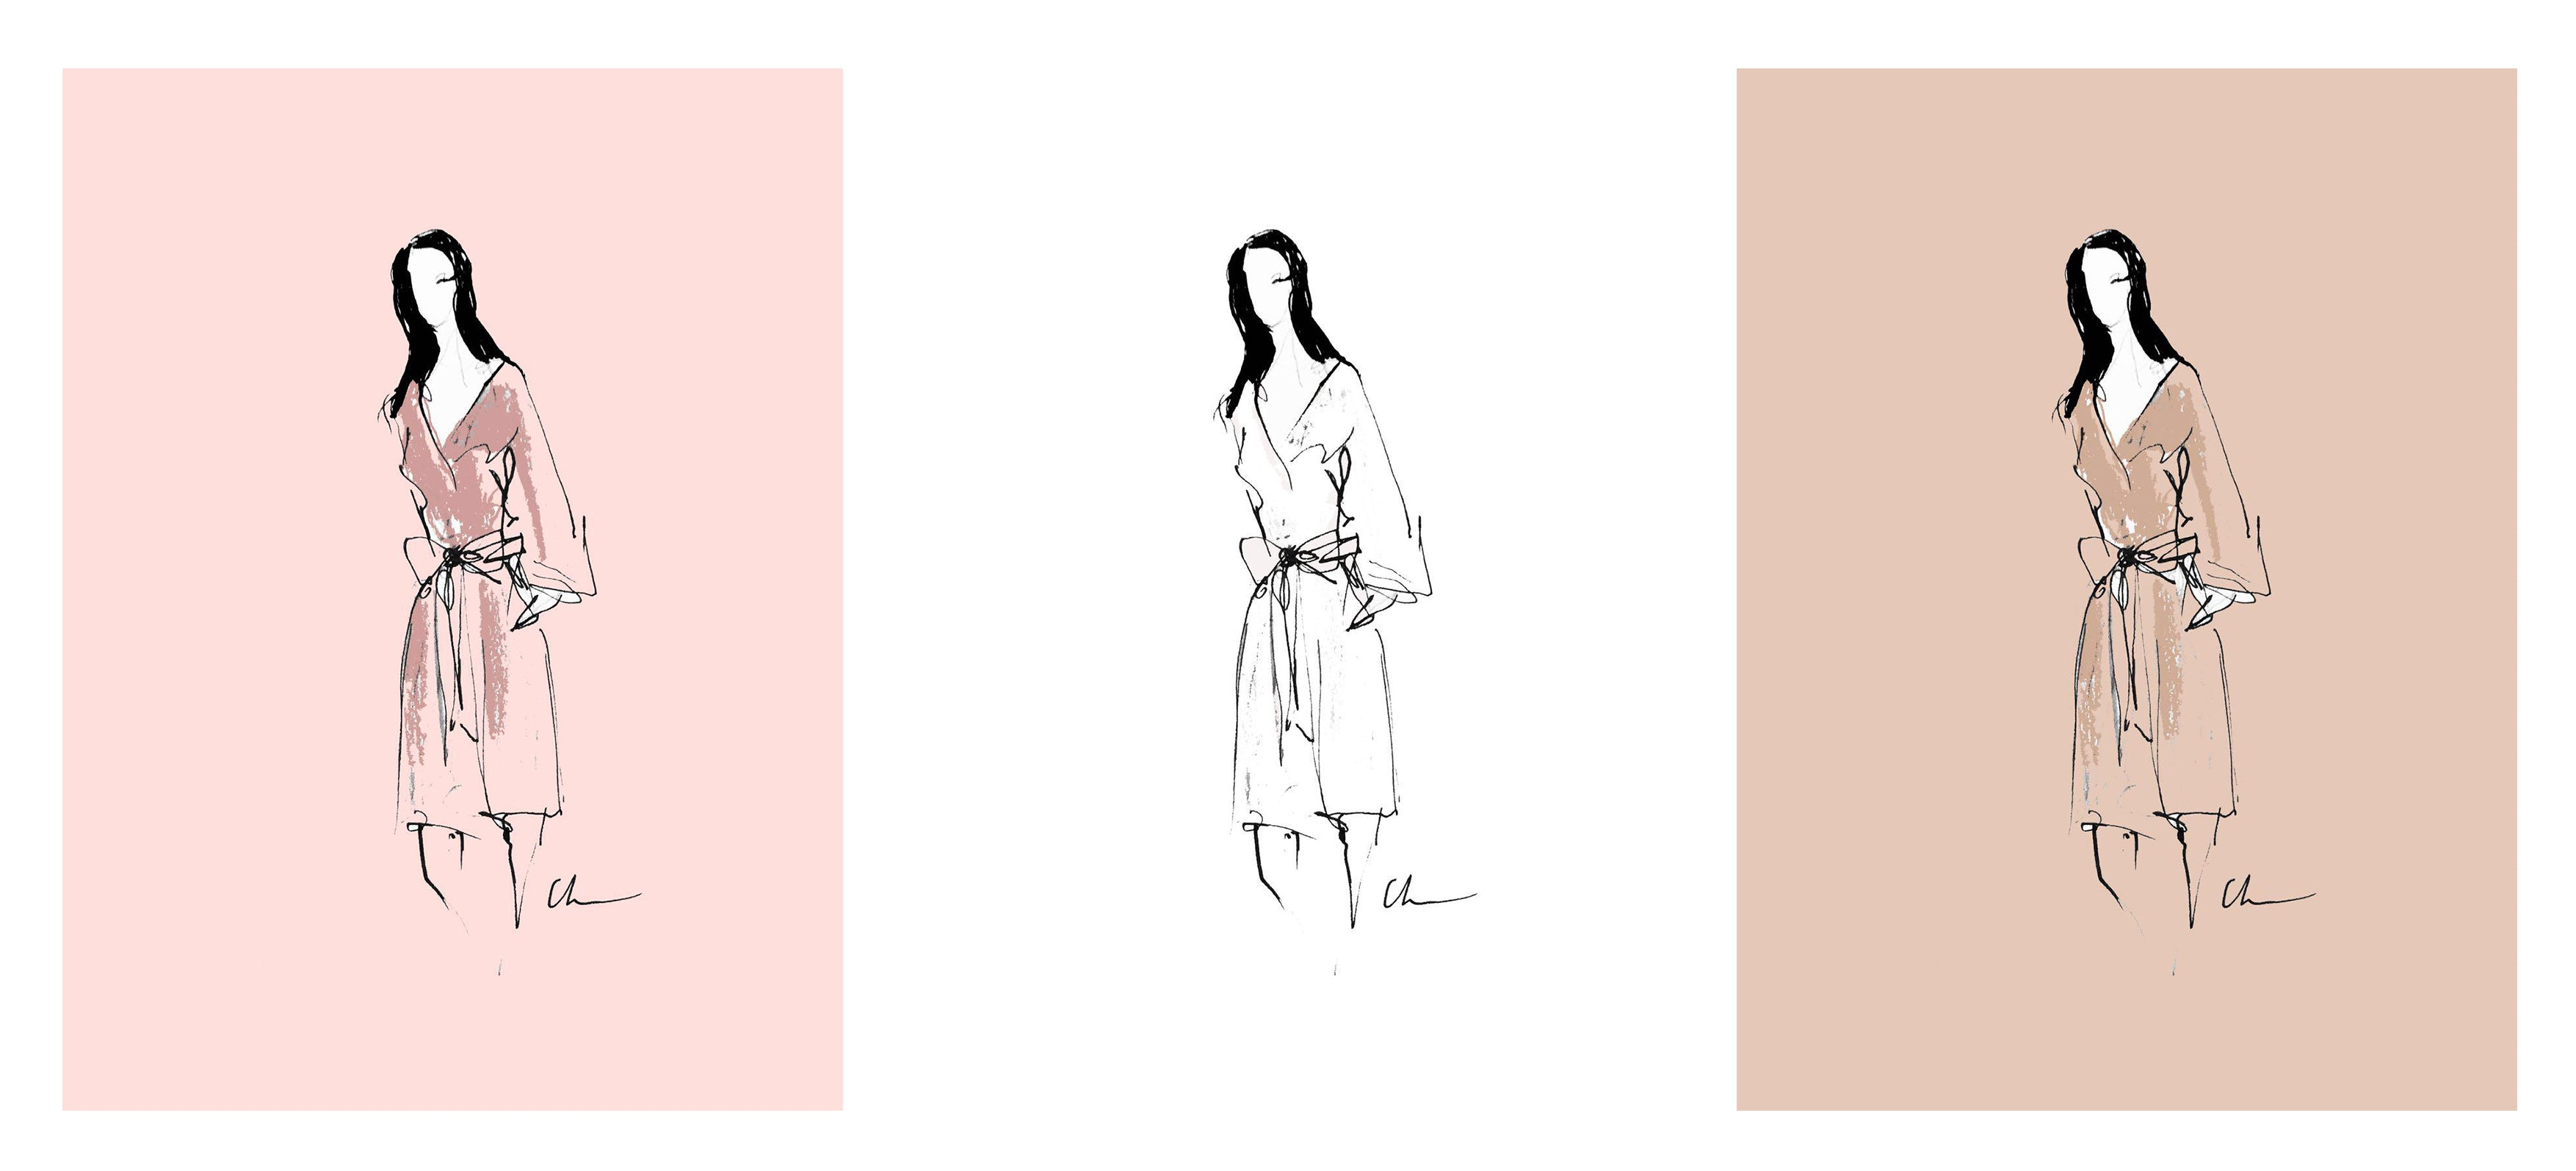 bridesmaid robe illustration - georgina keeley - charley herman